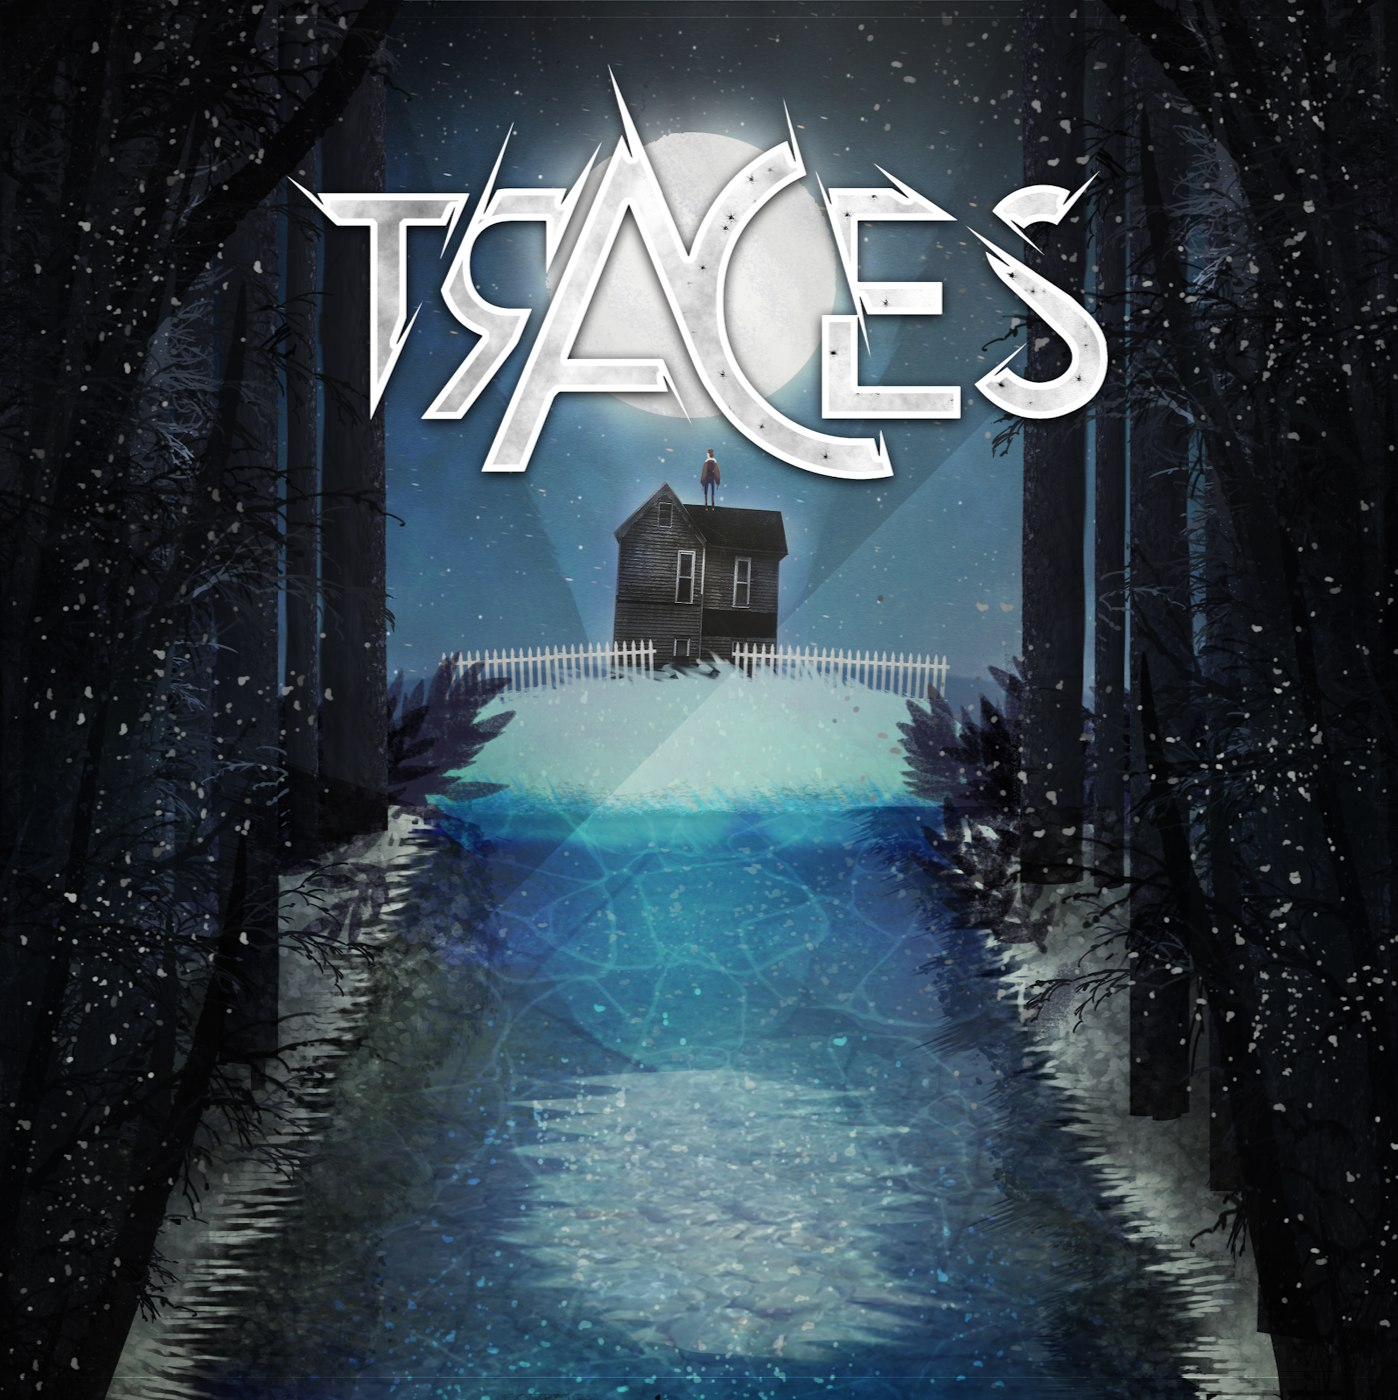 Traces - Of Servility [single] (2016)